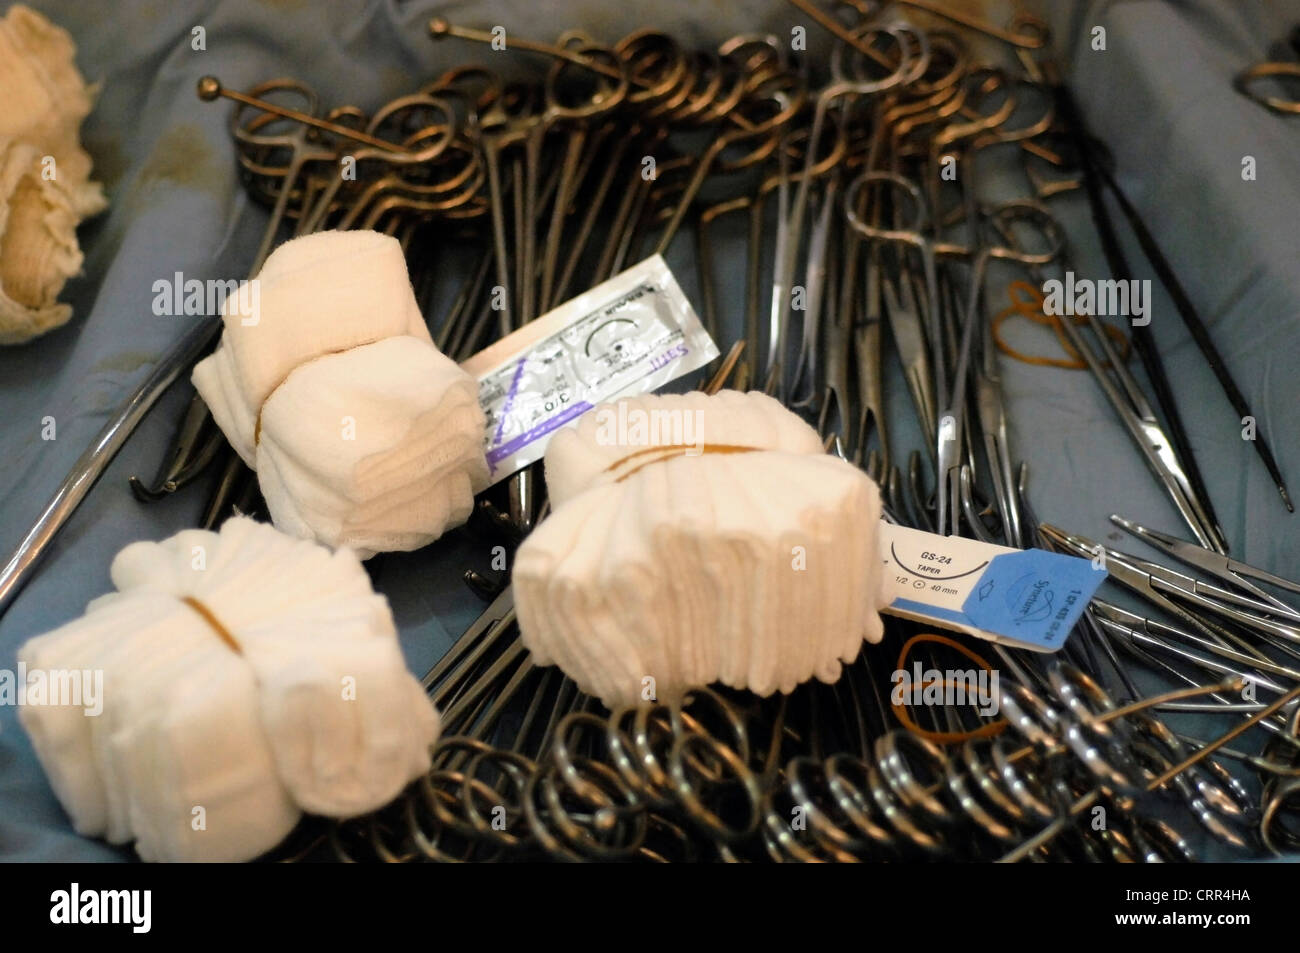 A mixed tray of surgical equipment including; forceps, swabs and scissors. - Stock Image